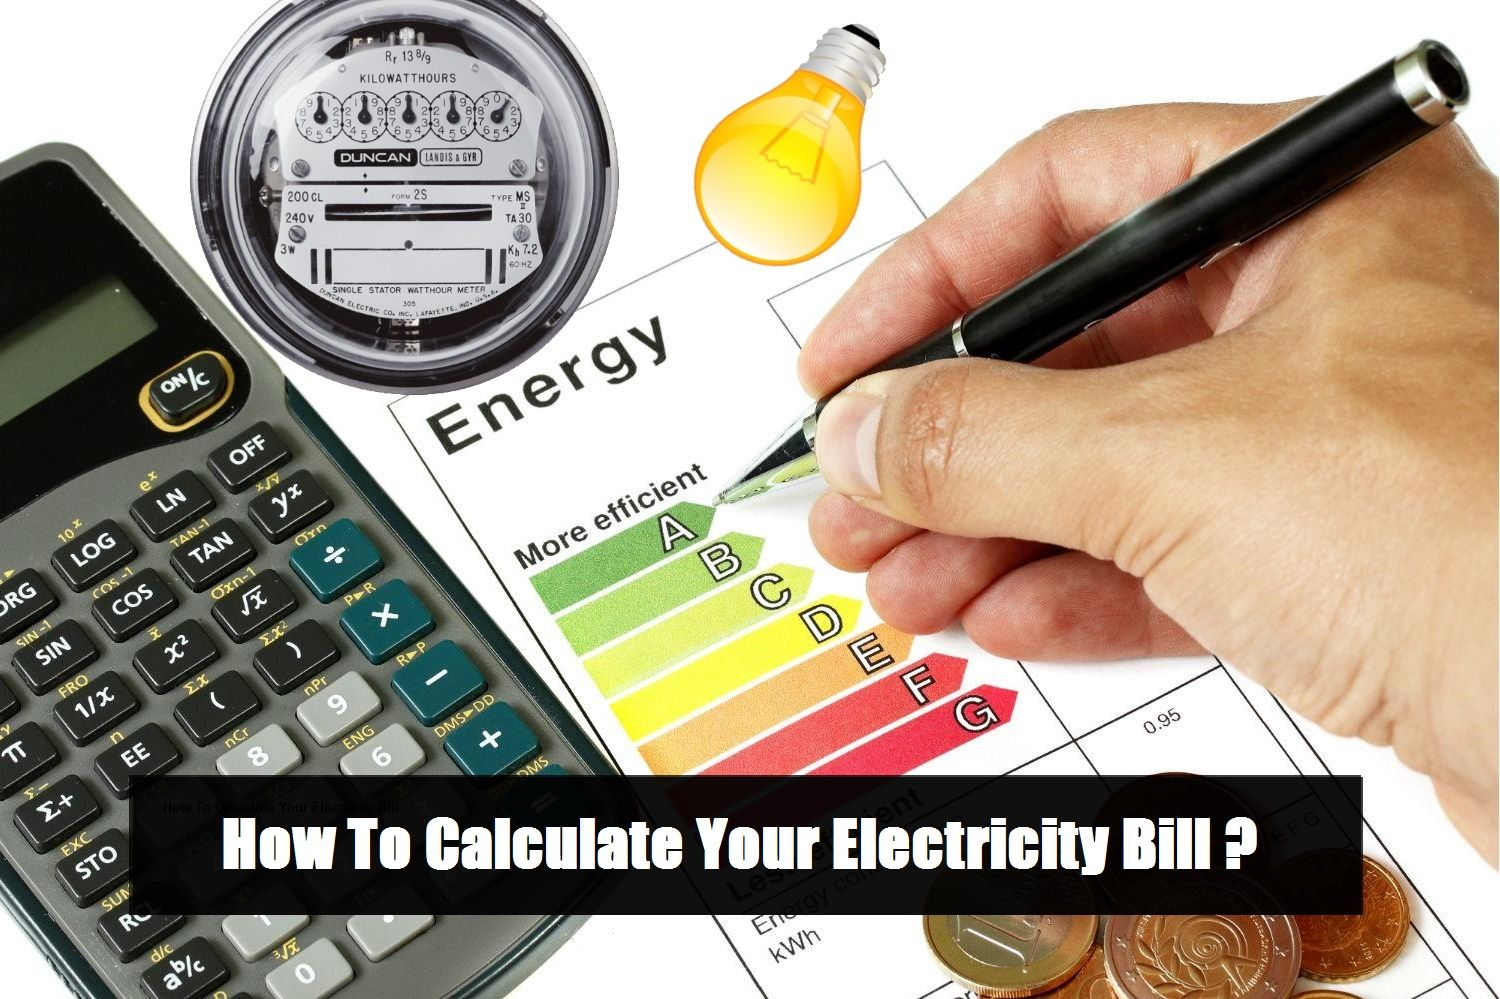 How To Calculate Your Electricity Bill Simple Calculation Electricity Bill Calculator Electrical Engineering